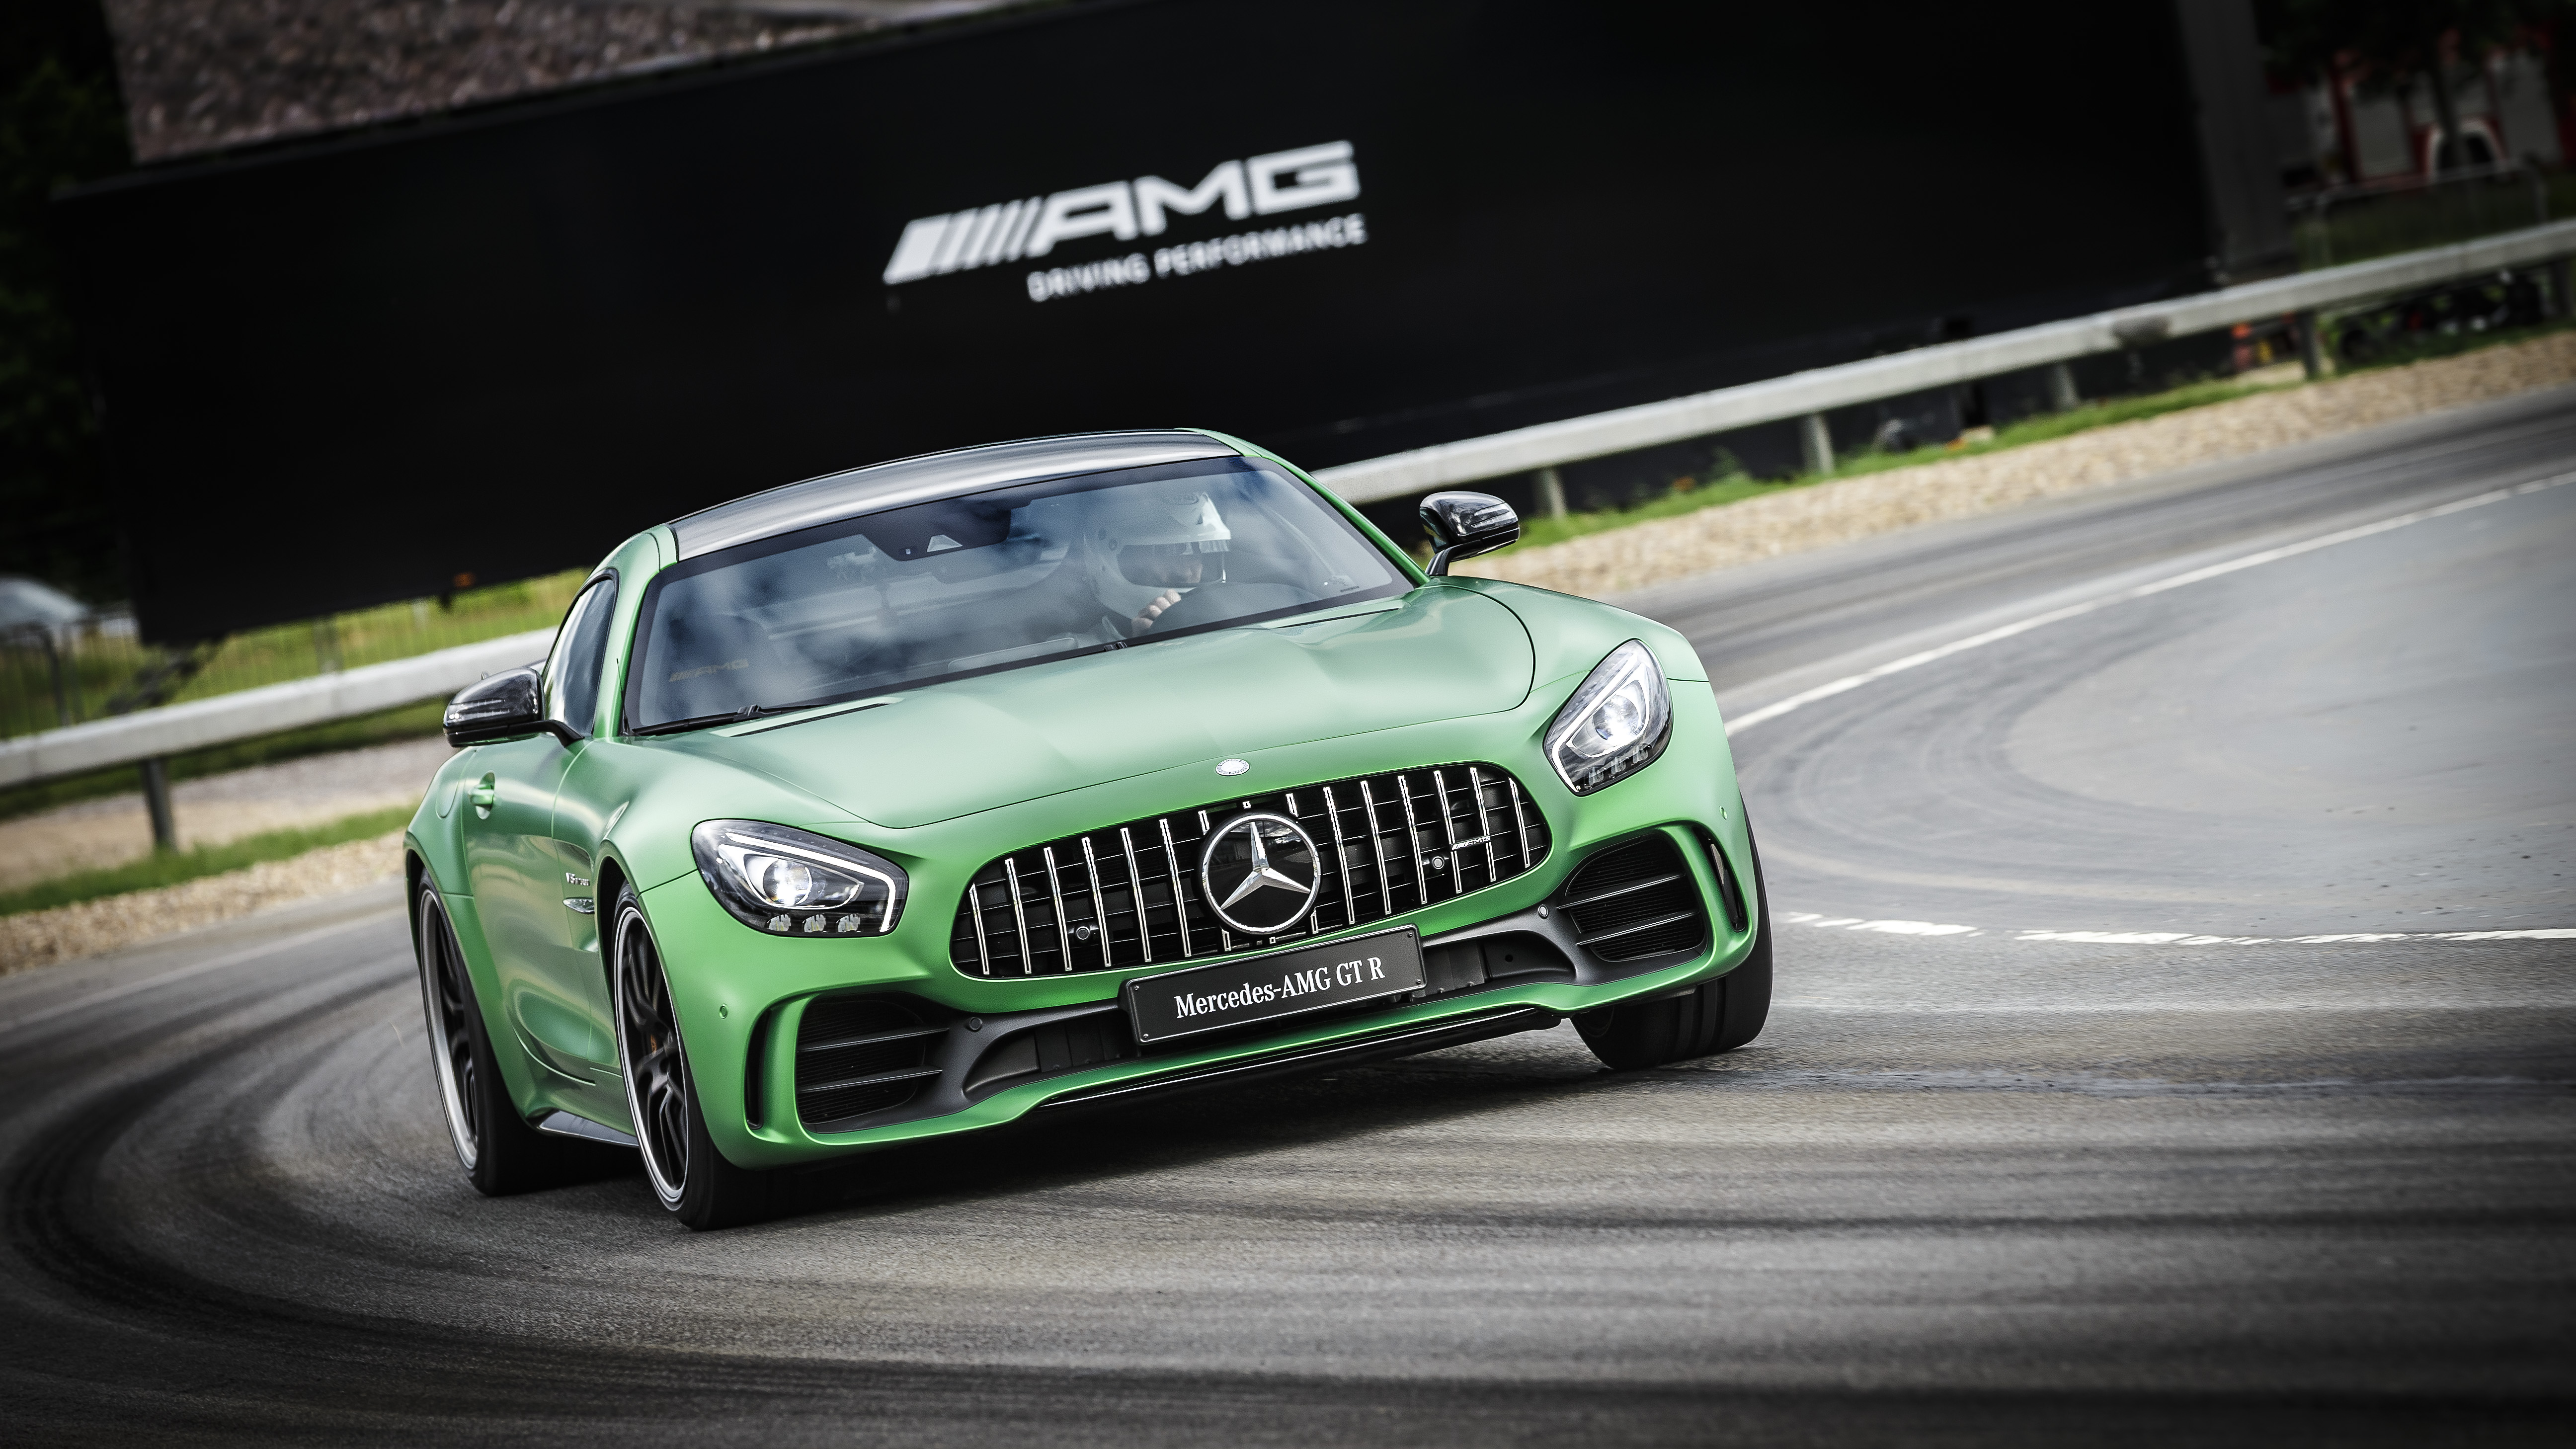 Mercedes-AMG GT R AMG Performance Day 2019